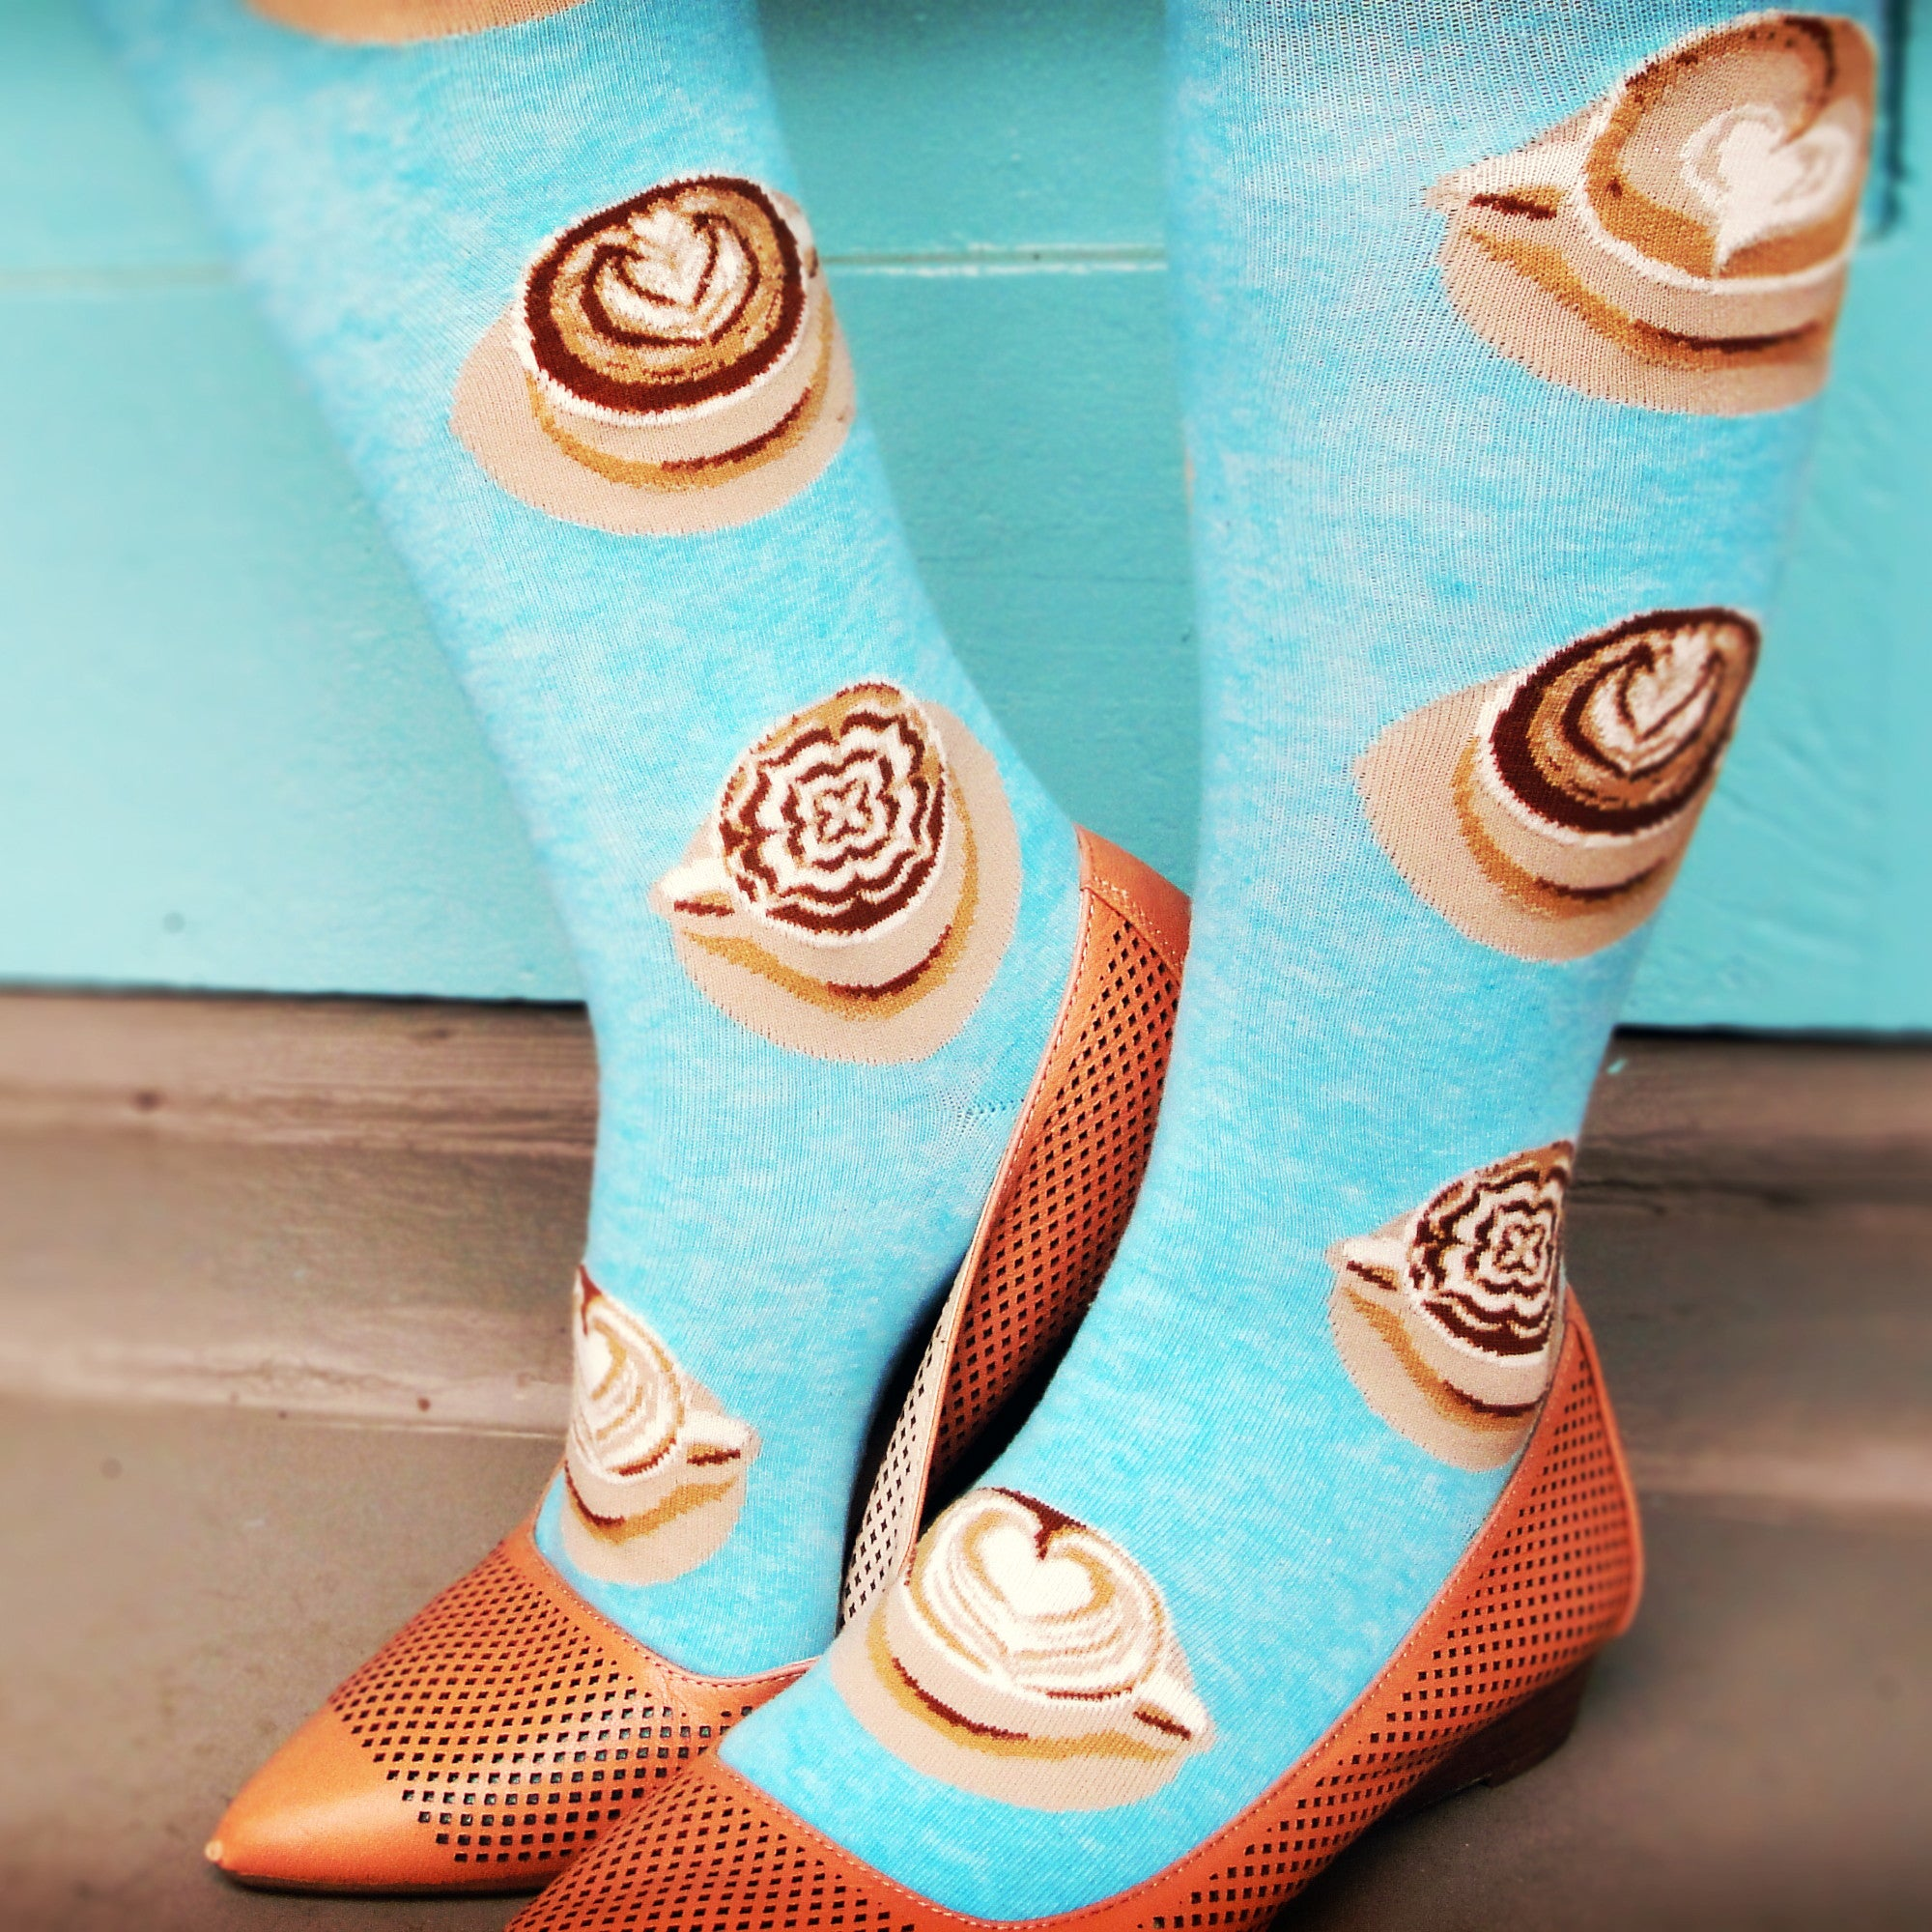 Coffee socks, like ModSocks' cute aqua knee socks featuring cups of latte art, are the best part of waking up.